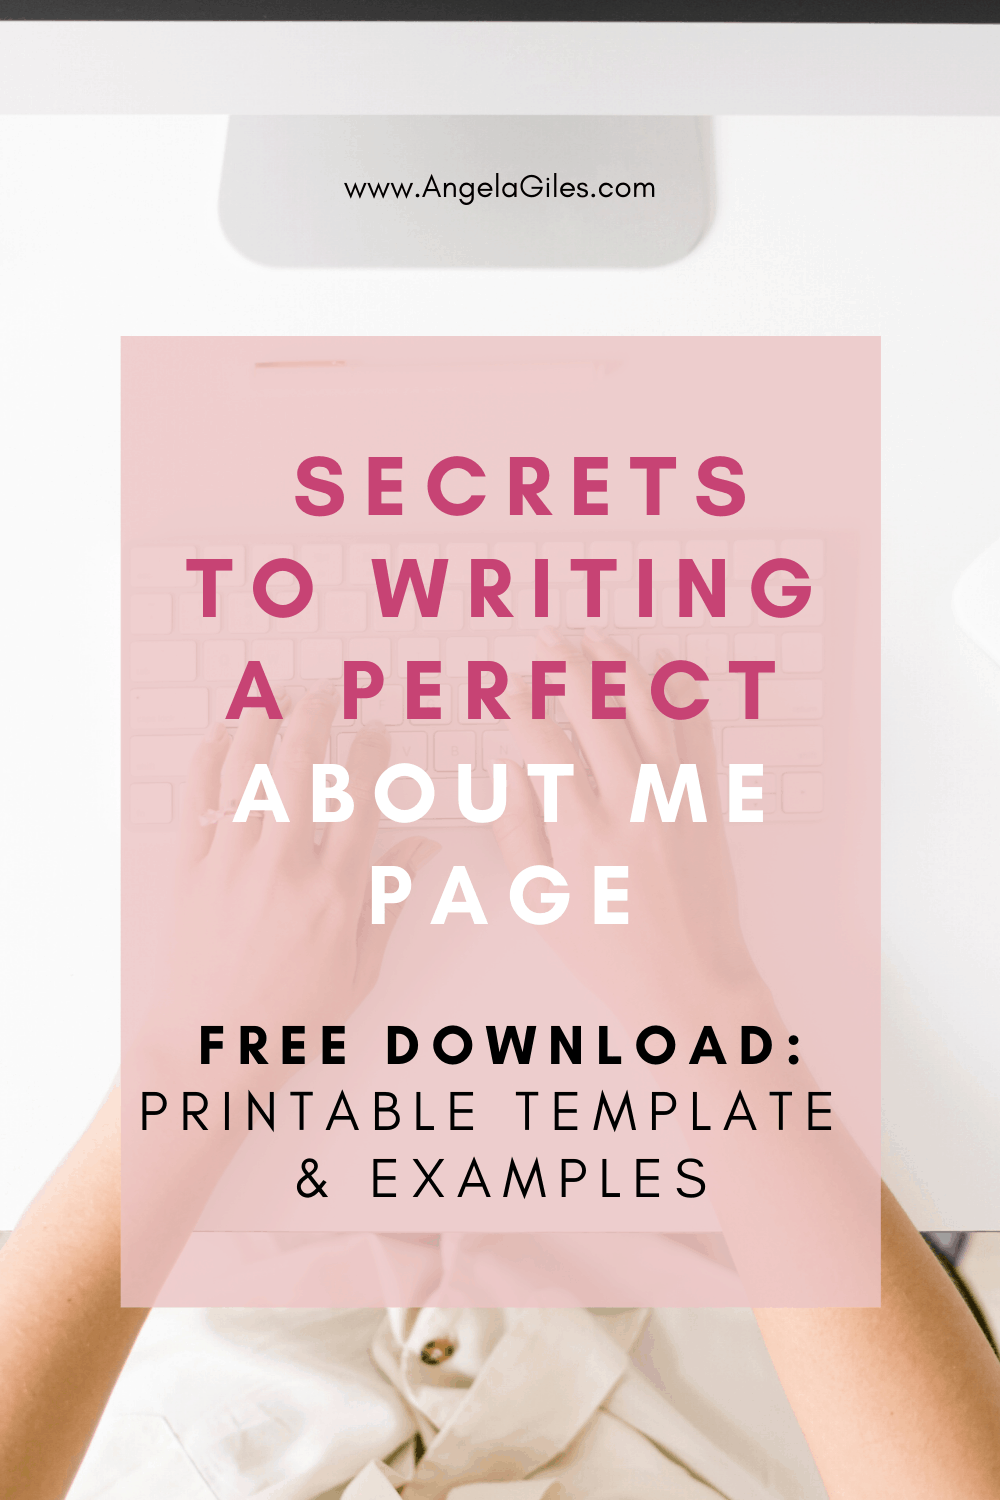 How to write the perfect blog about me page.  Complete with examples, ideas and a printable template.  Perfect for the creative blogger who wants to turn visitors on their about me page into raving fans who come back to their website time and time again.